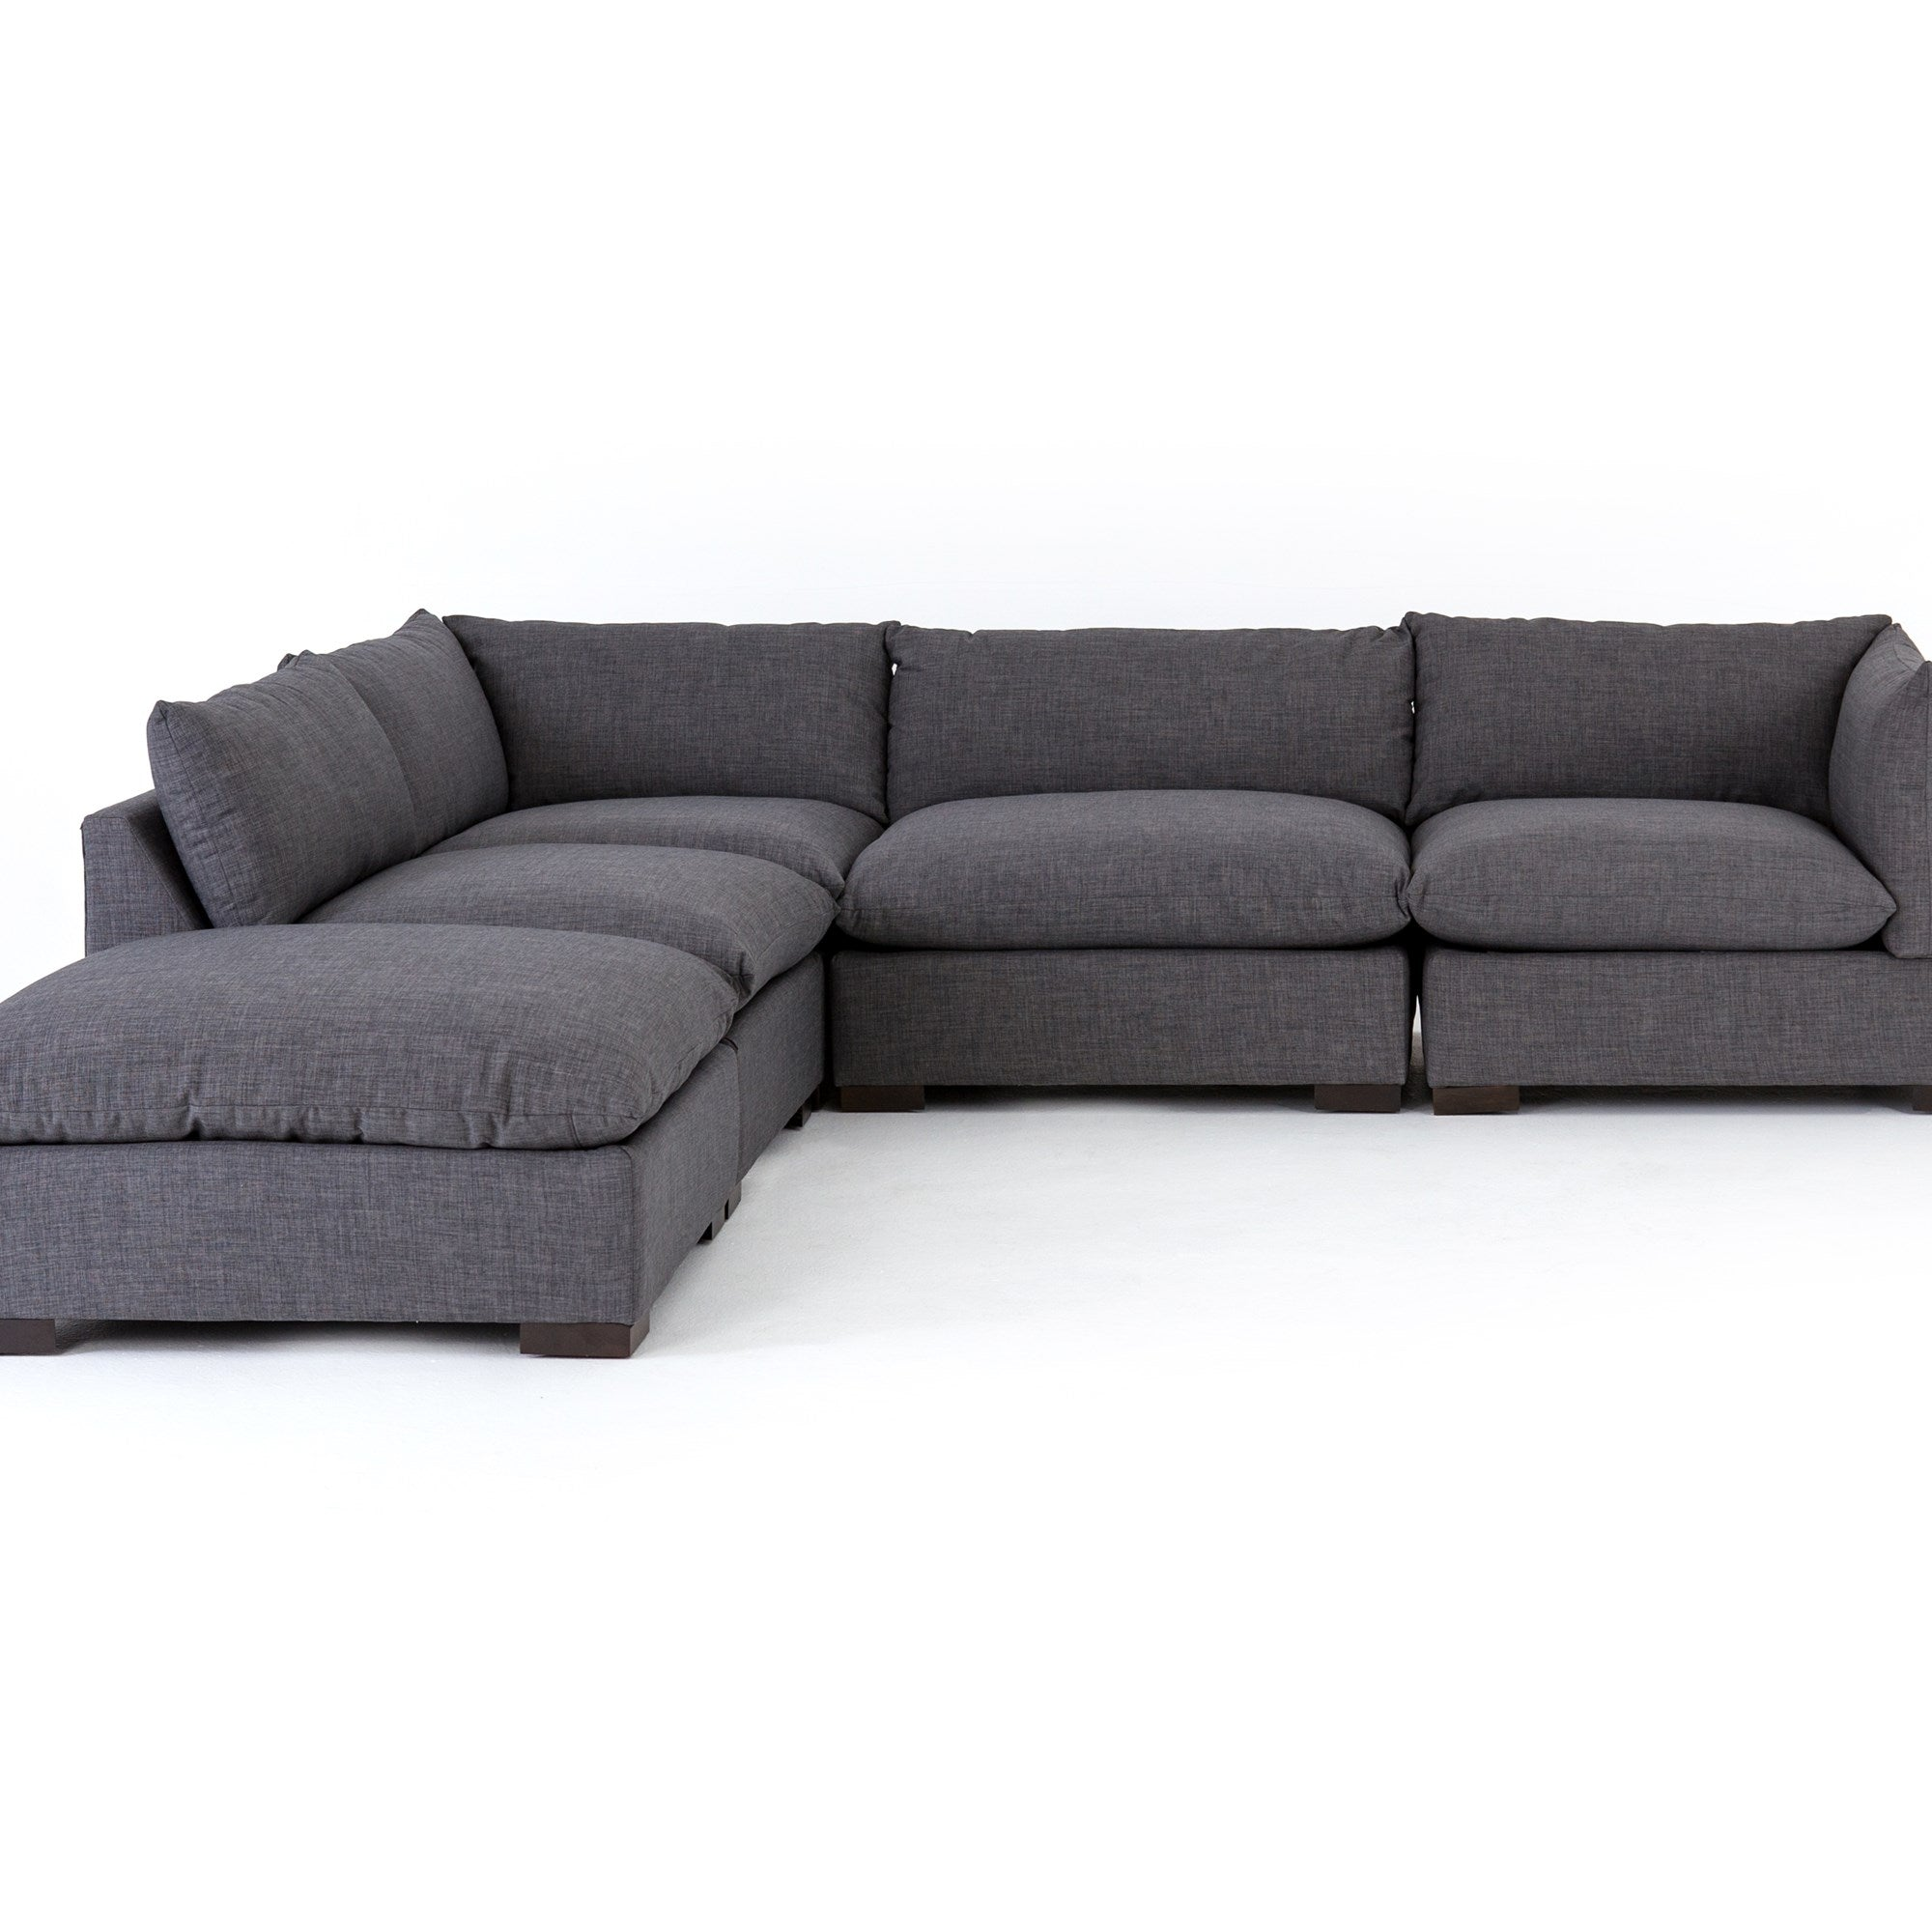 Westwood 4 Piece Sectional with Ottoman